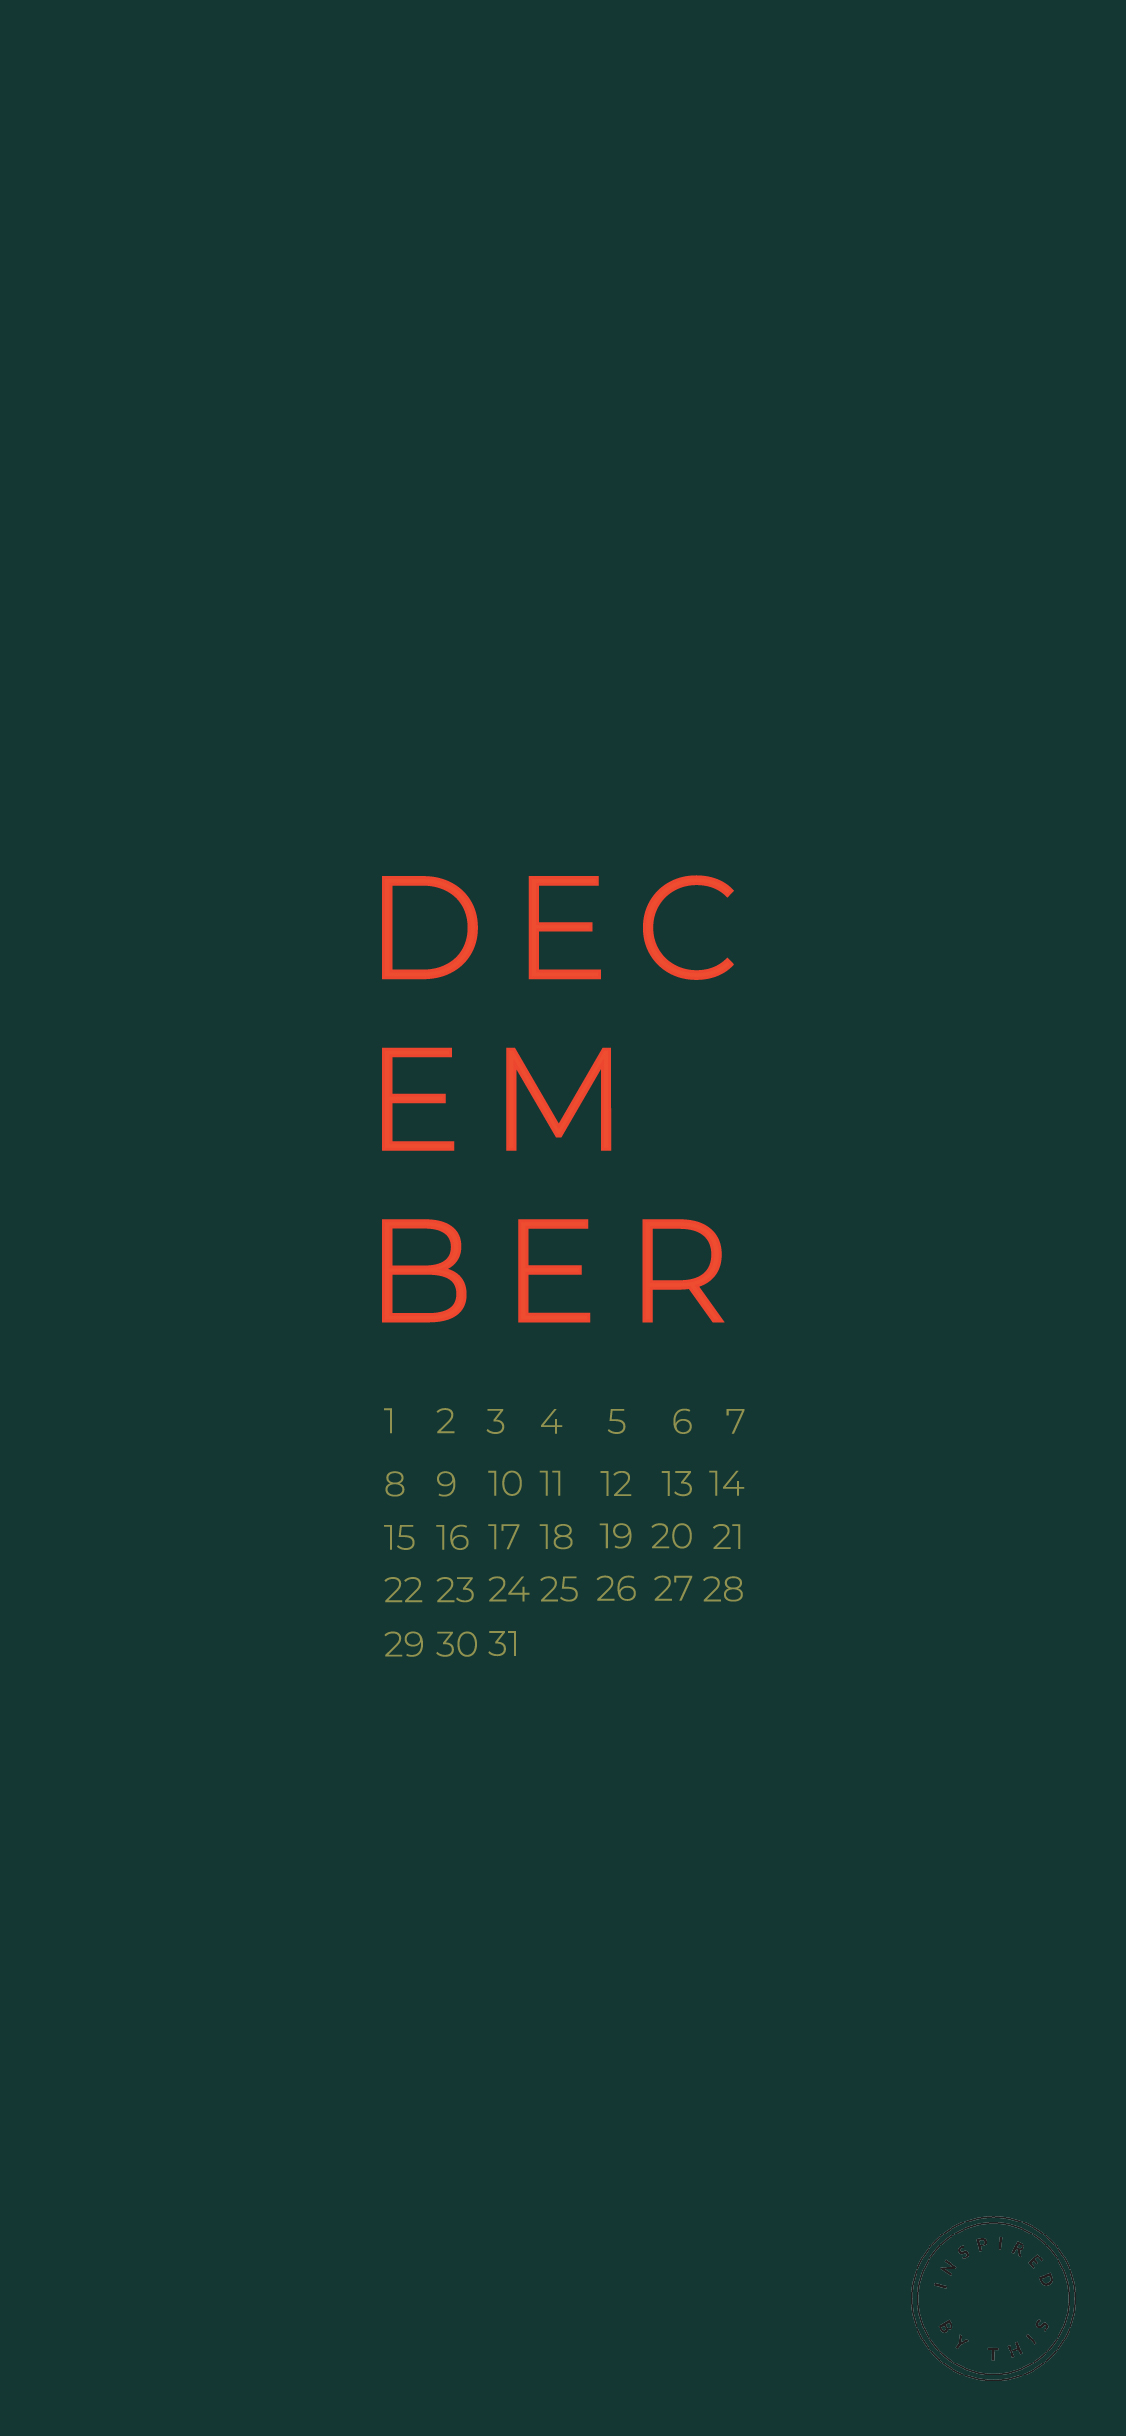 Our Festive December Wallpaper Release Inspired By This